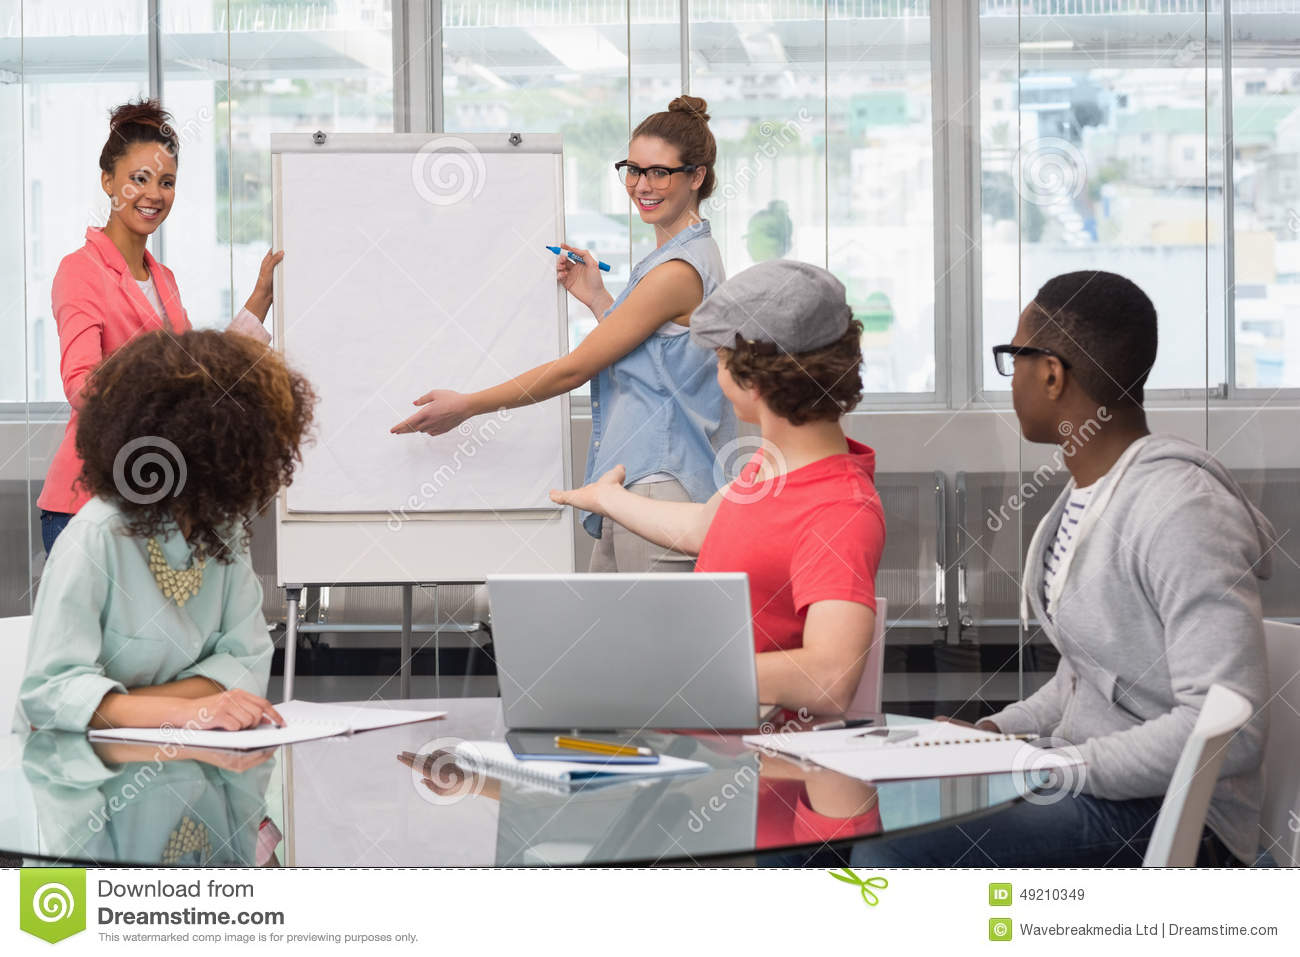 college presentations 1evaluation standards may be based on disciplinary frameworks and defined at program level oral presentation rubric college of science purdue university.